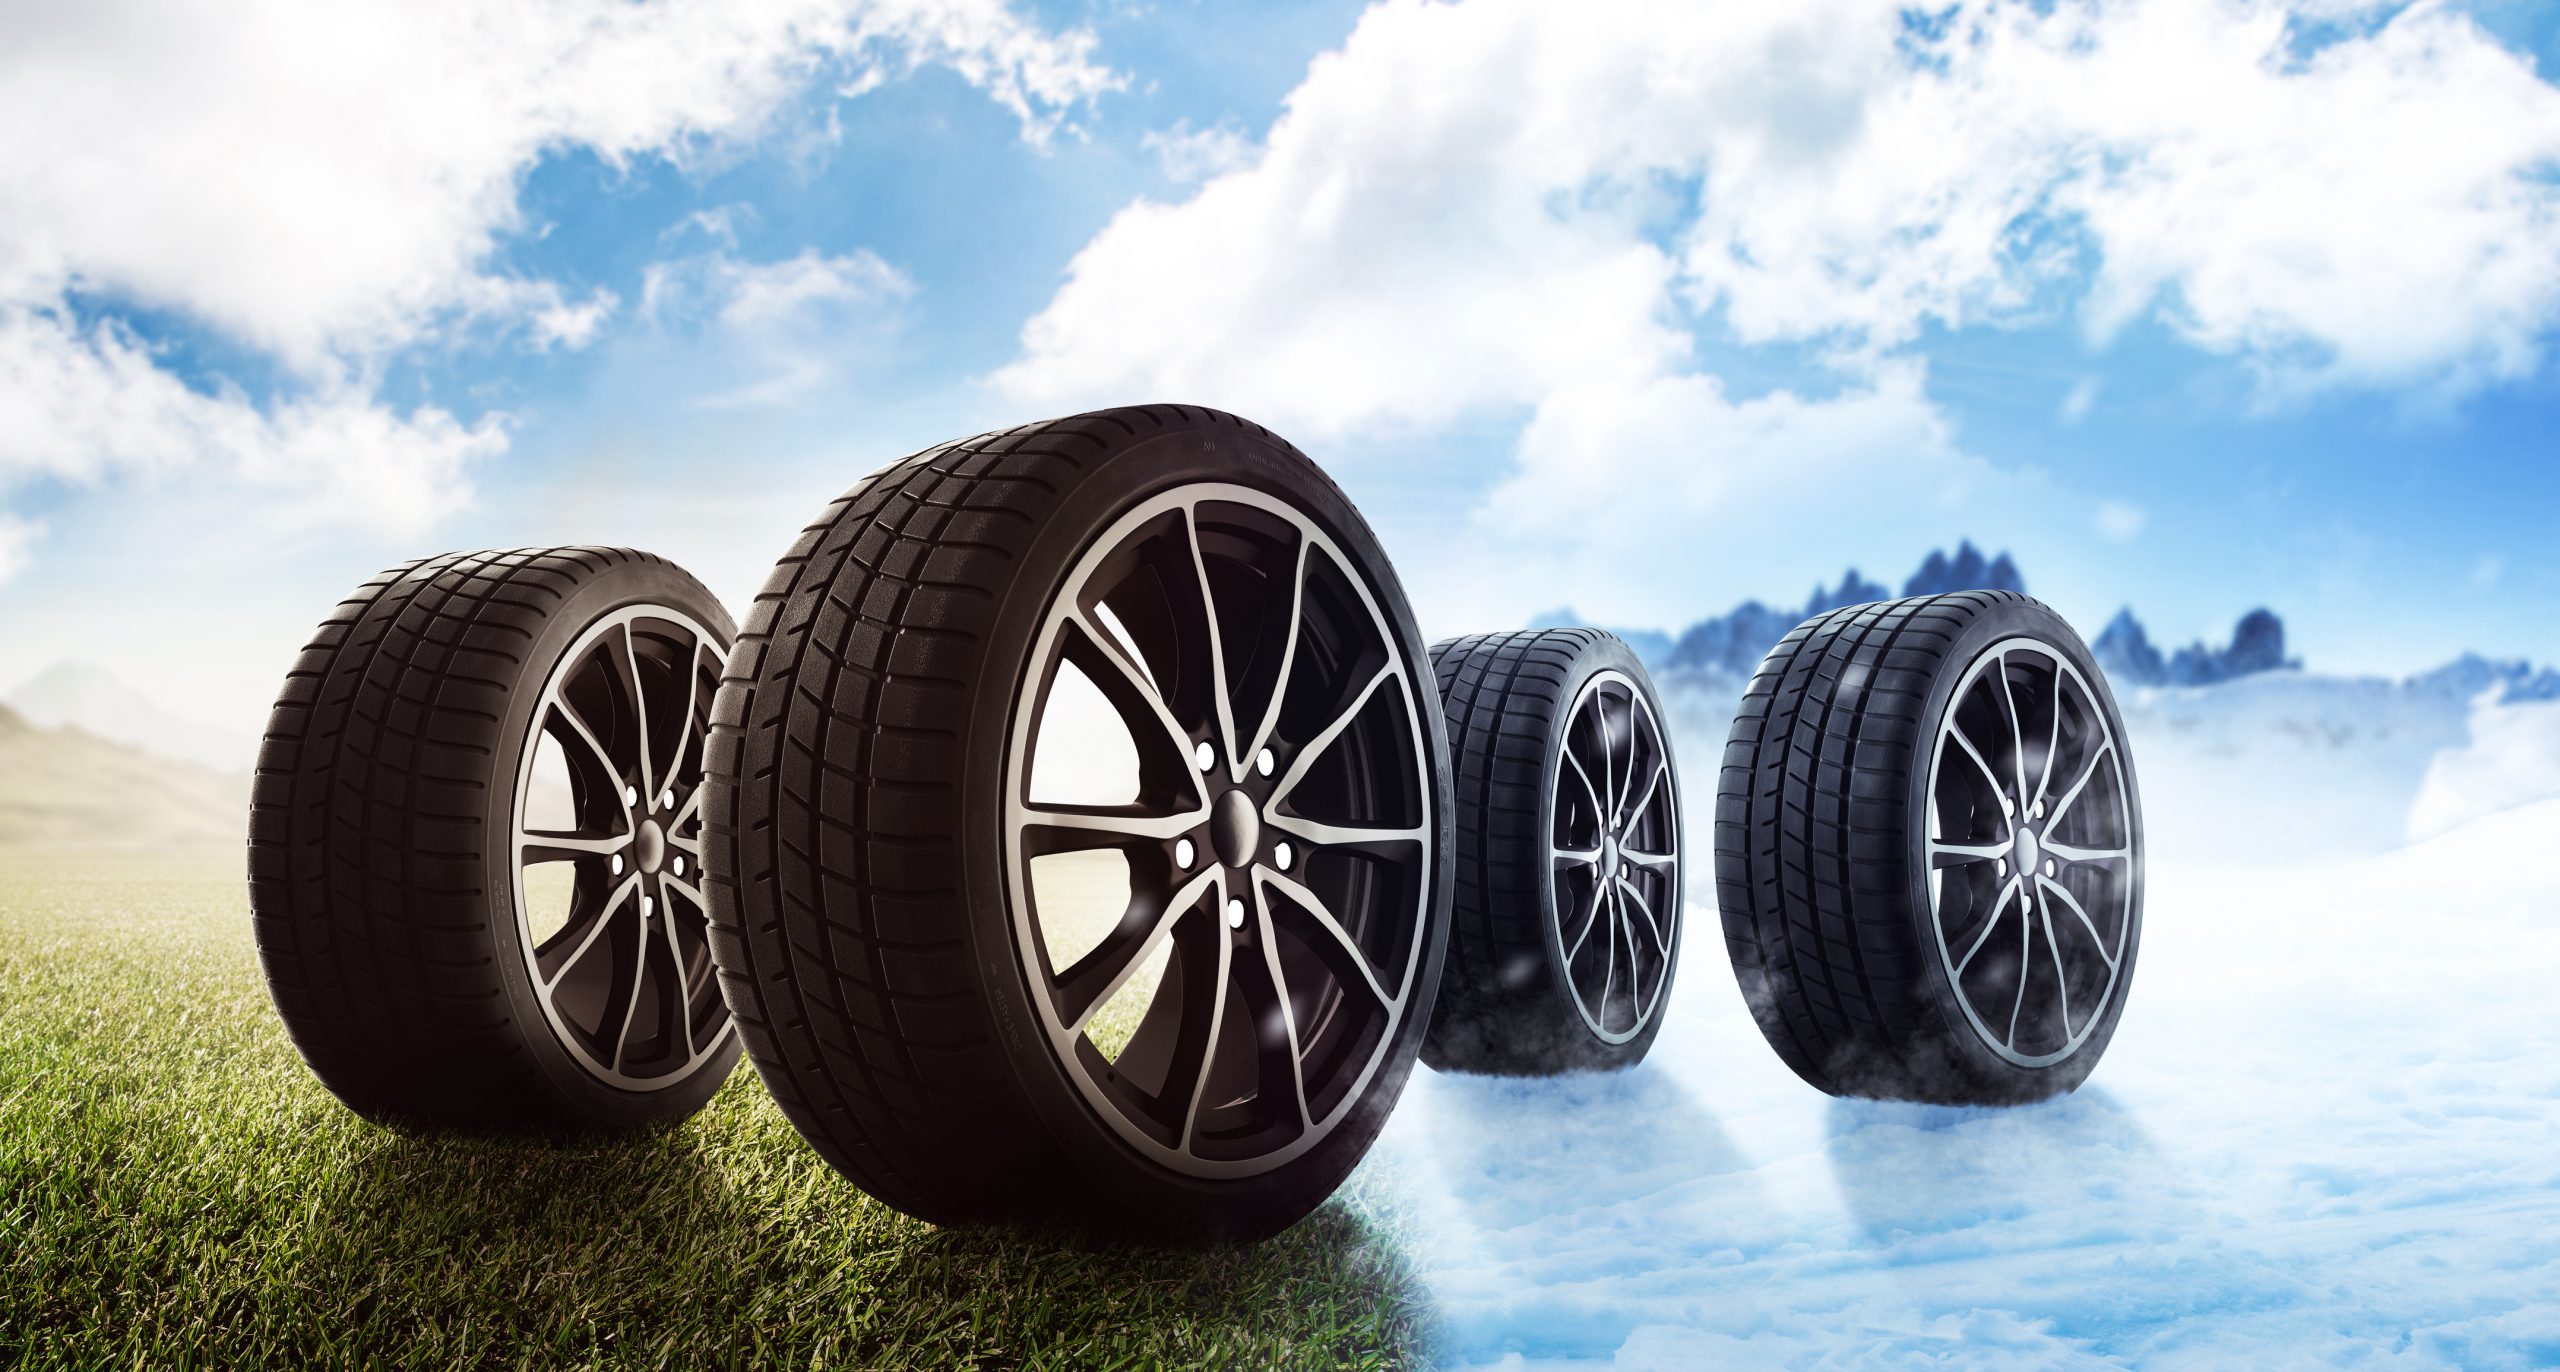 Looking for new tires this season? Call Lithia Toyota of Abilene today!